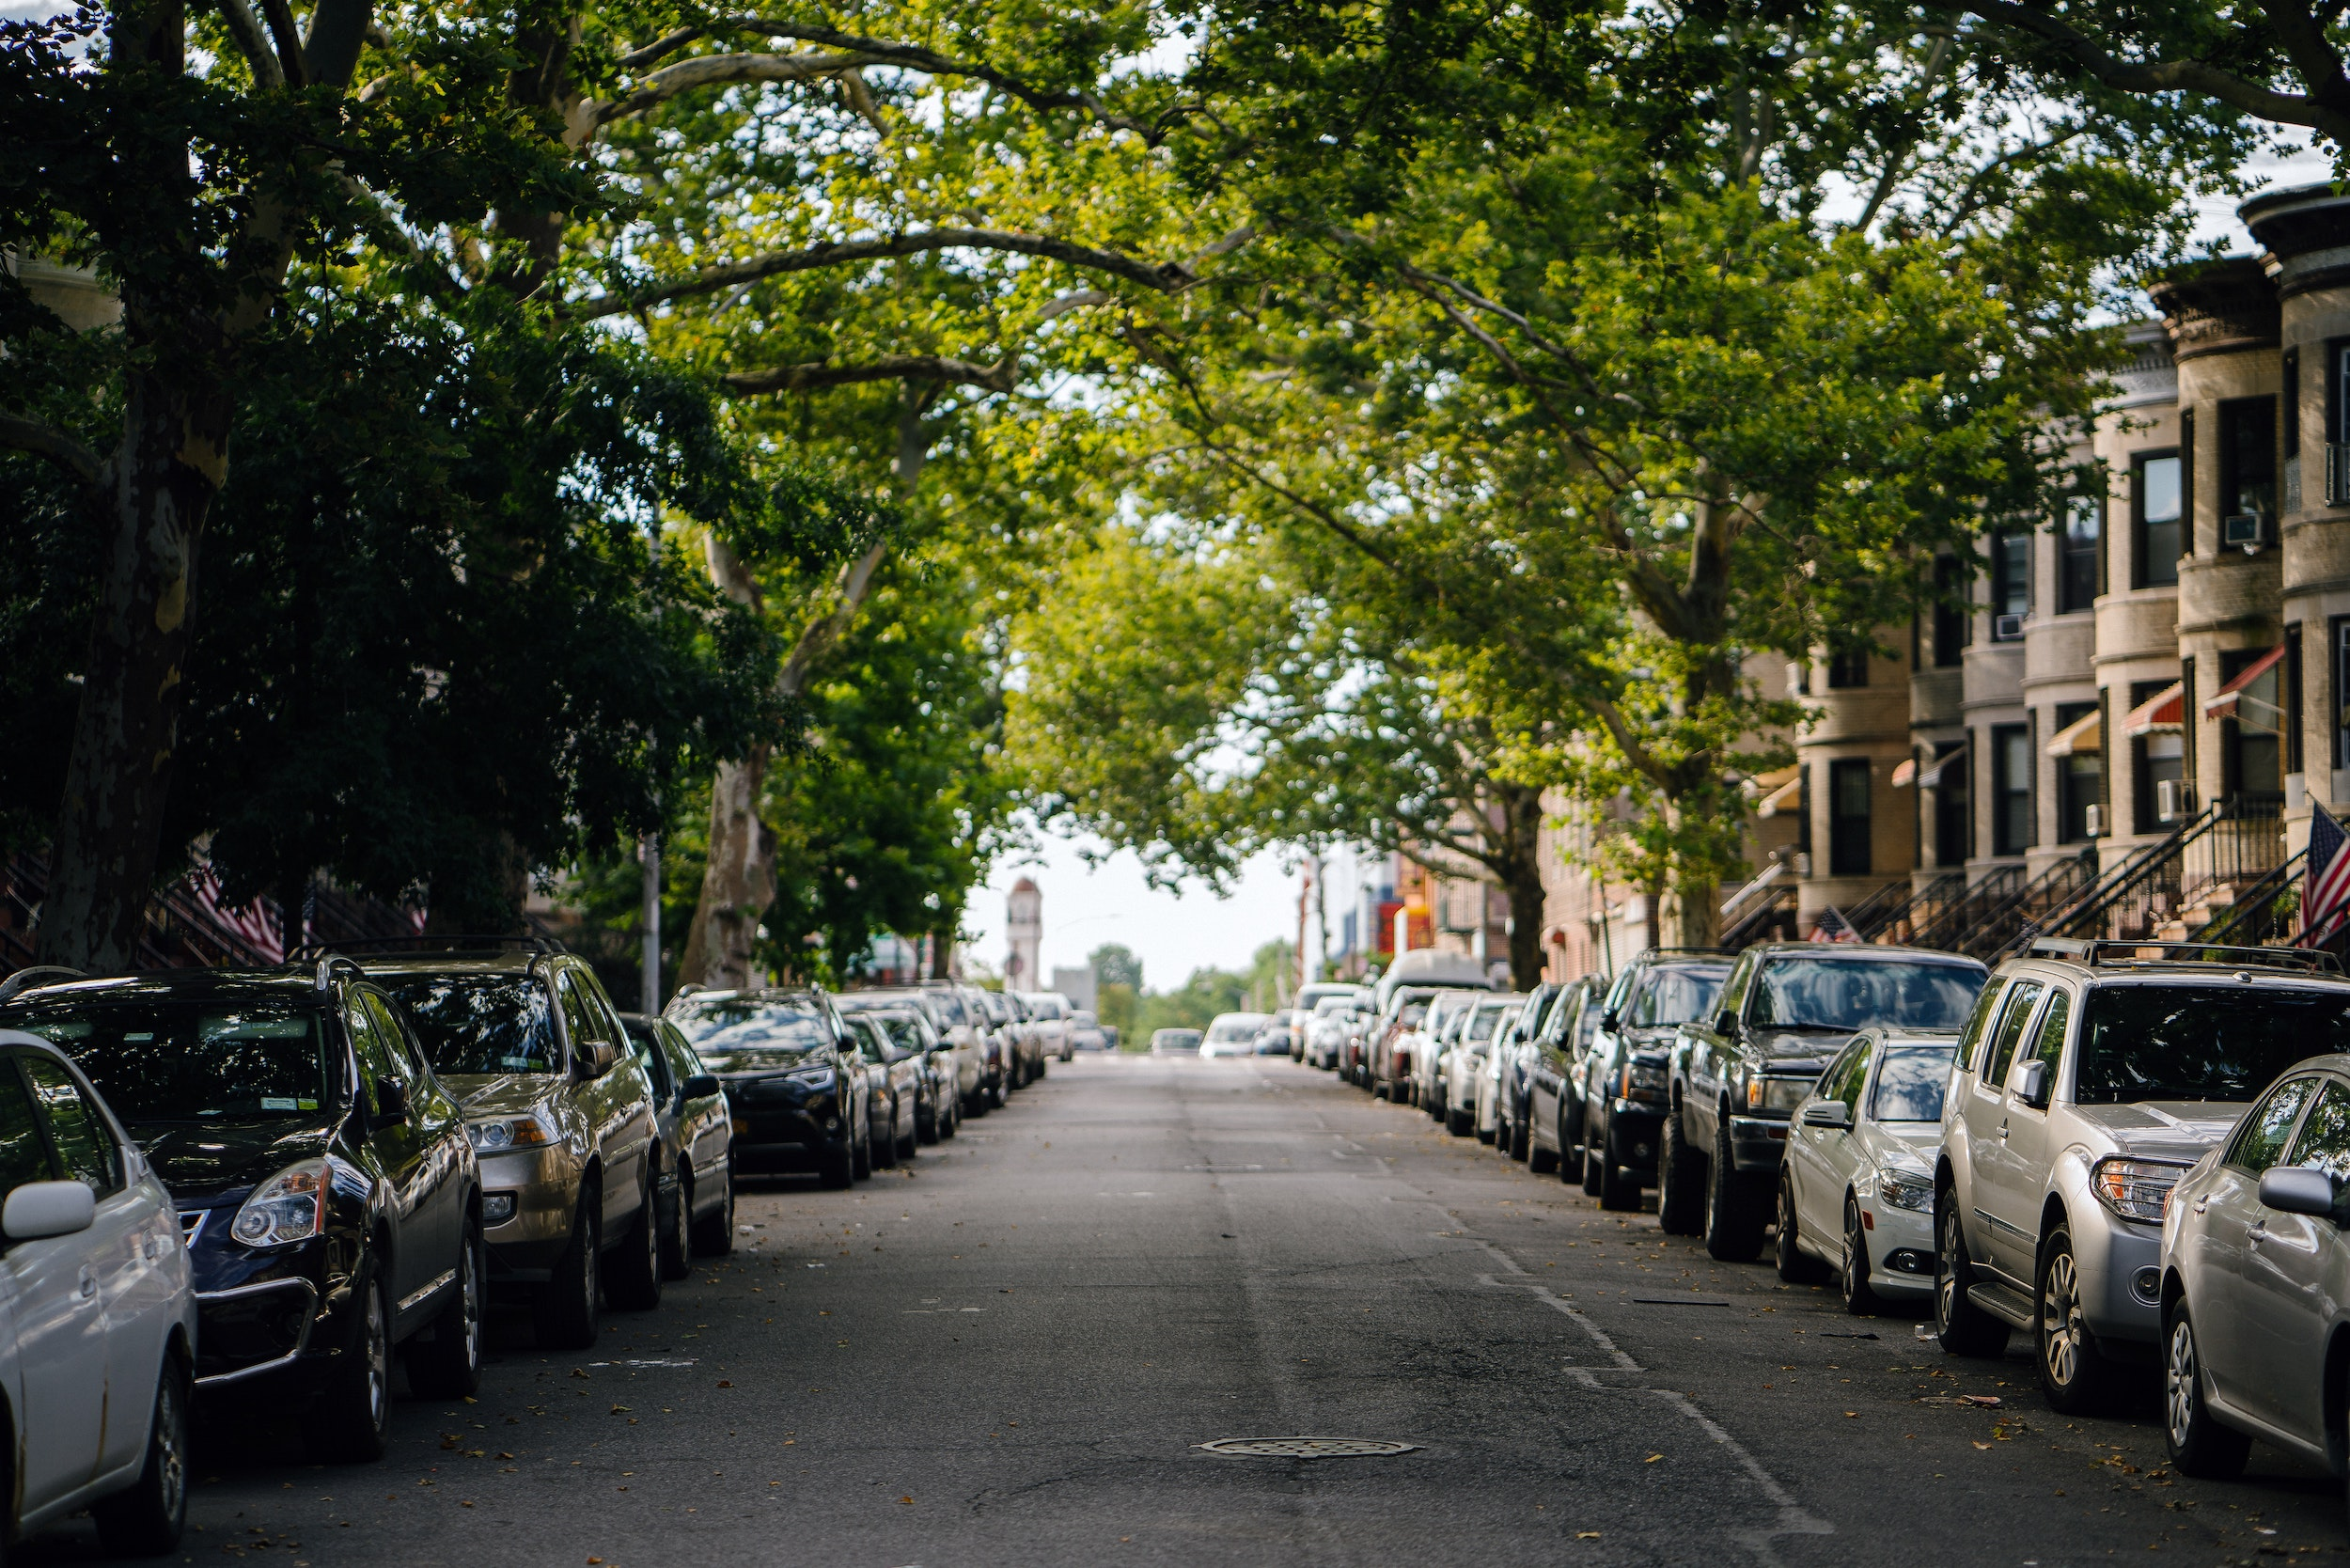 City parking: government benefits of going digital